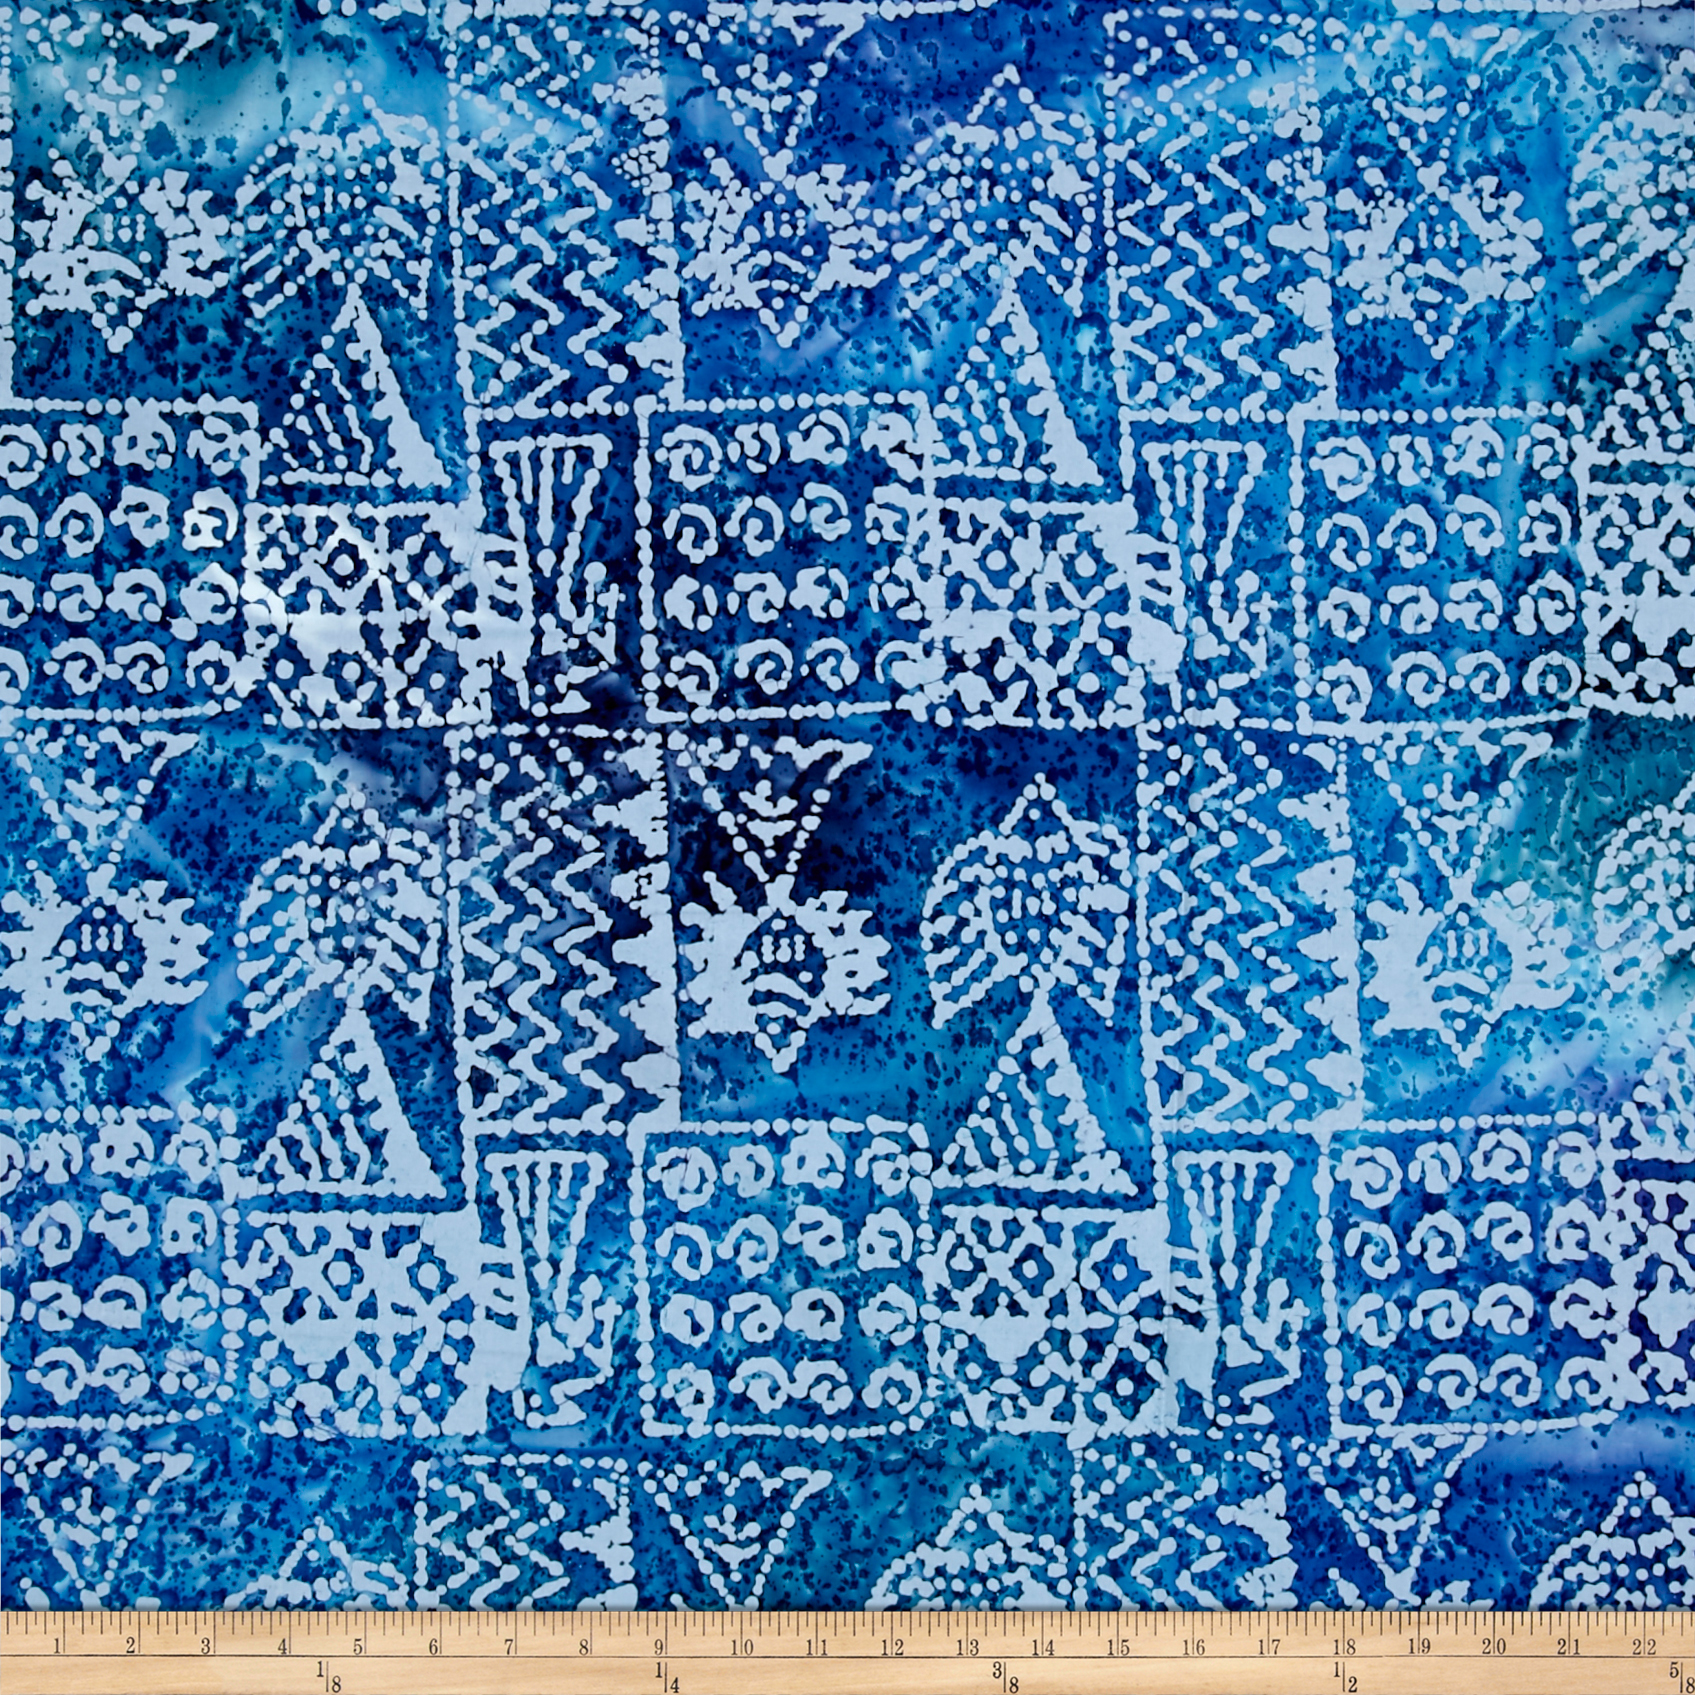 Indian Batik Ocean Grove Island Patch Blue Fabric by Textile Creations in USA